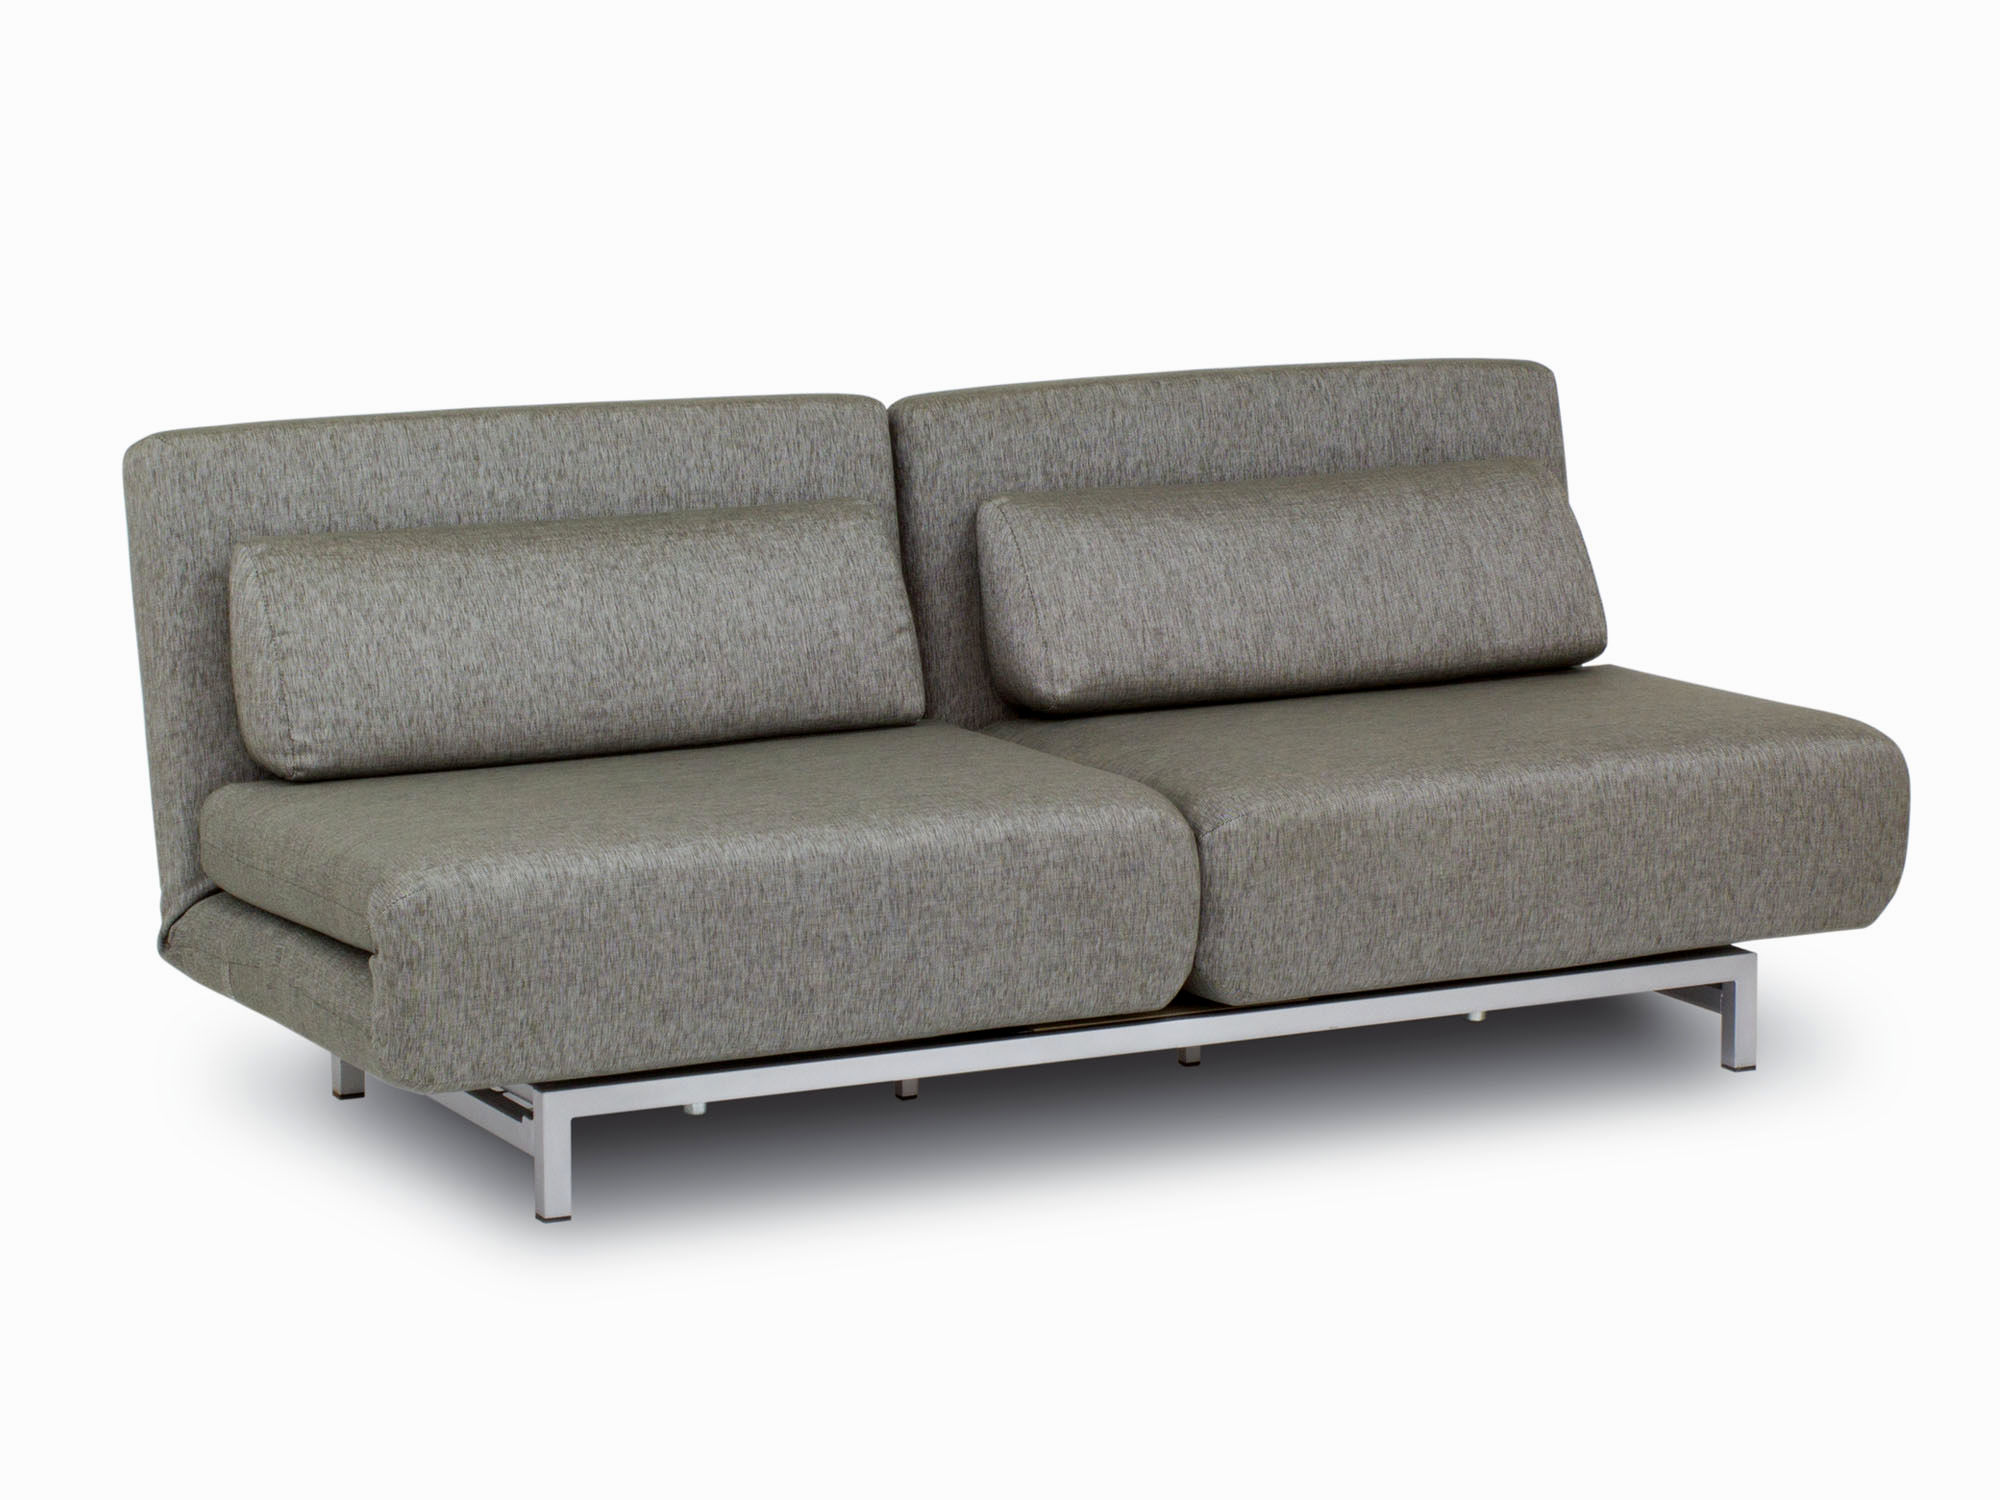 awesome two seater sofa bed ideas-Amazing Two Seater sofa Bed Inspiration